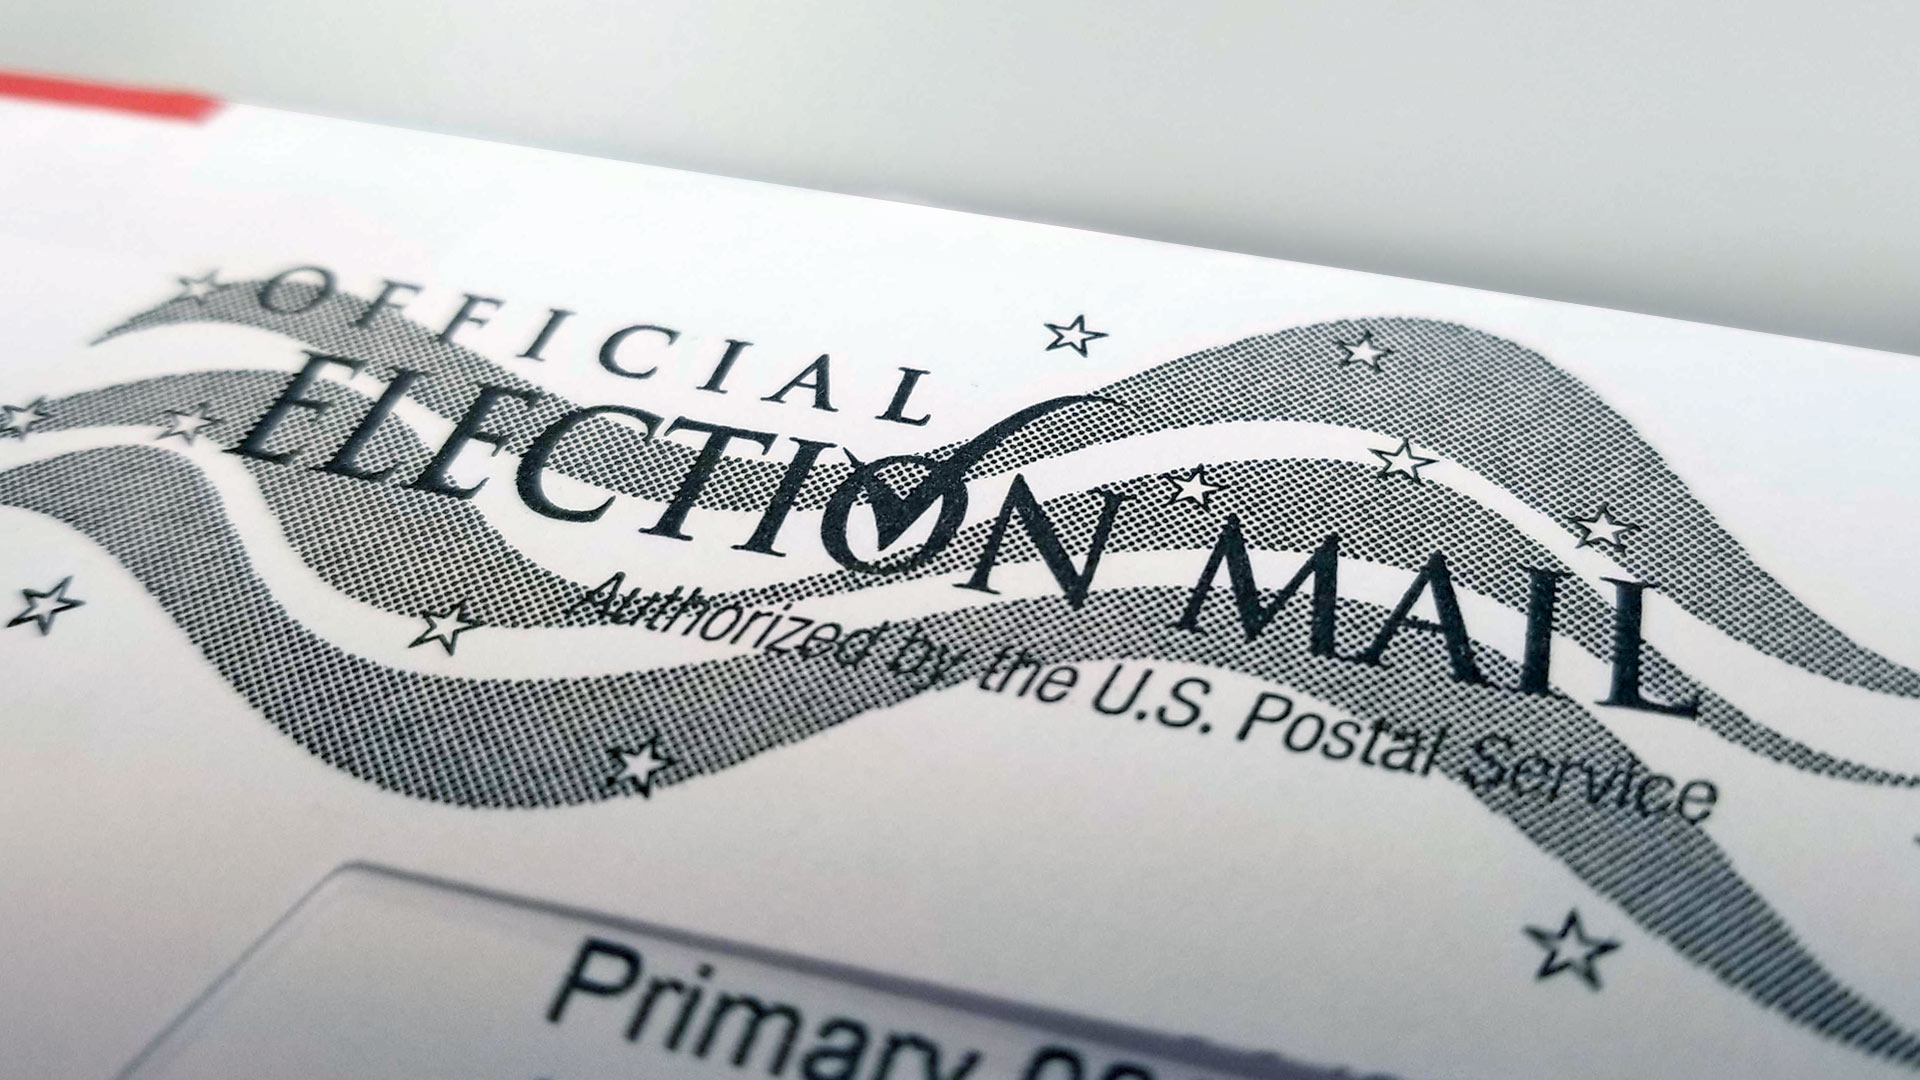 An envelope containing a ballot for an Aug. 27 primary election in the city of Tucson.